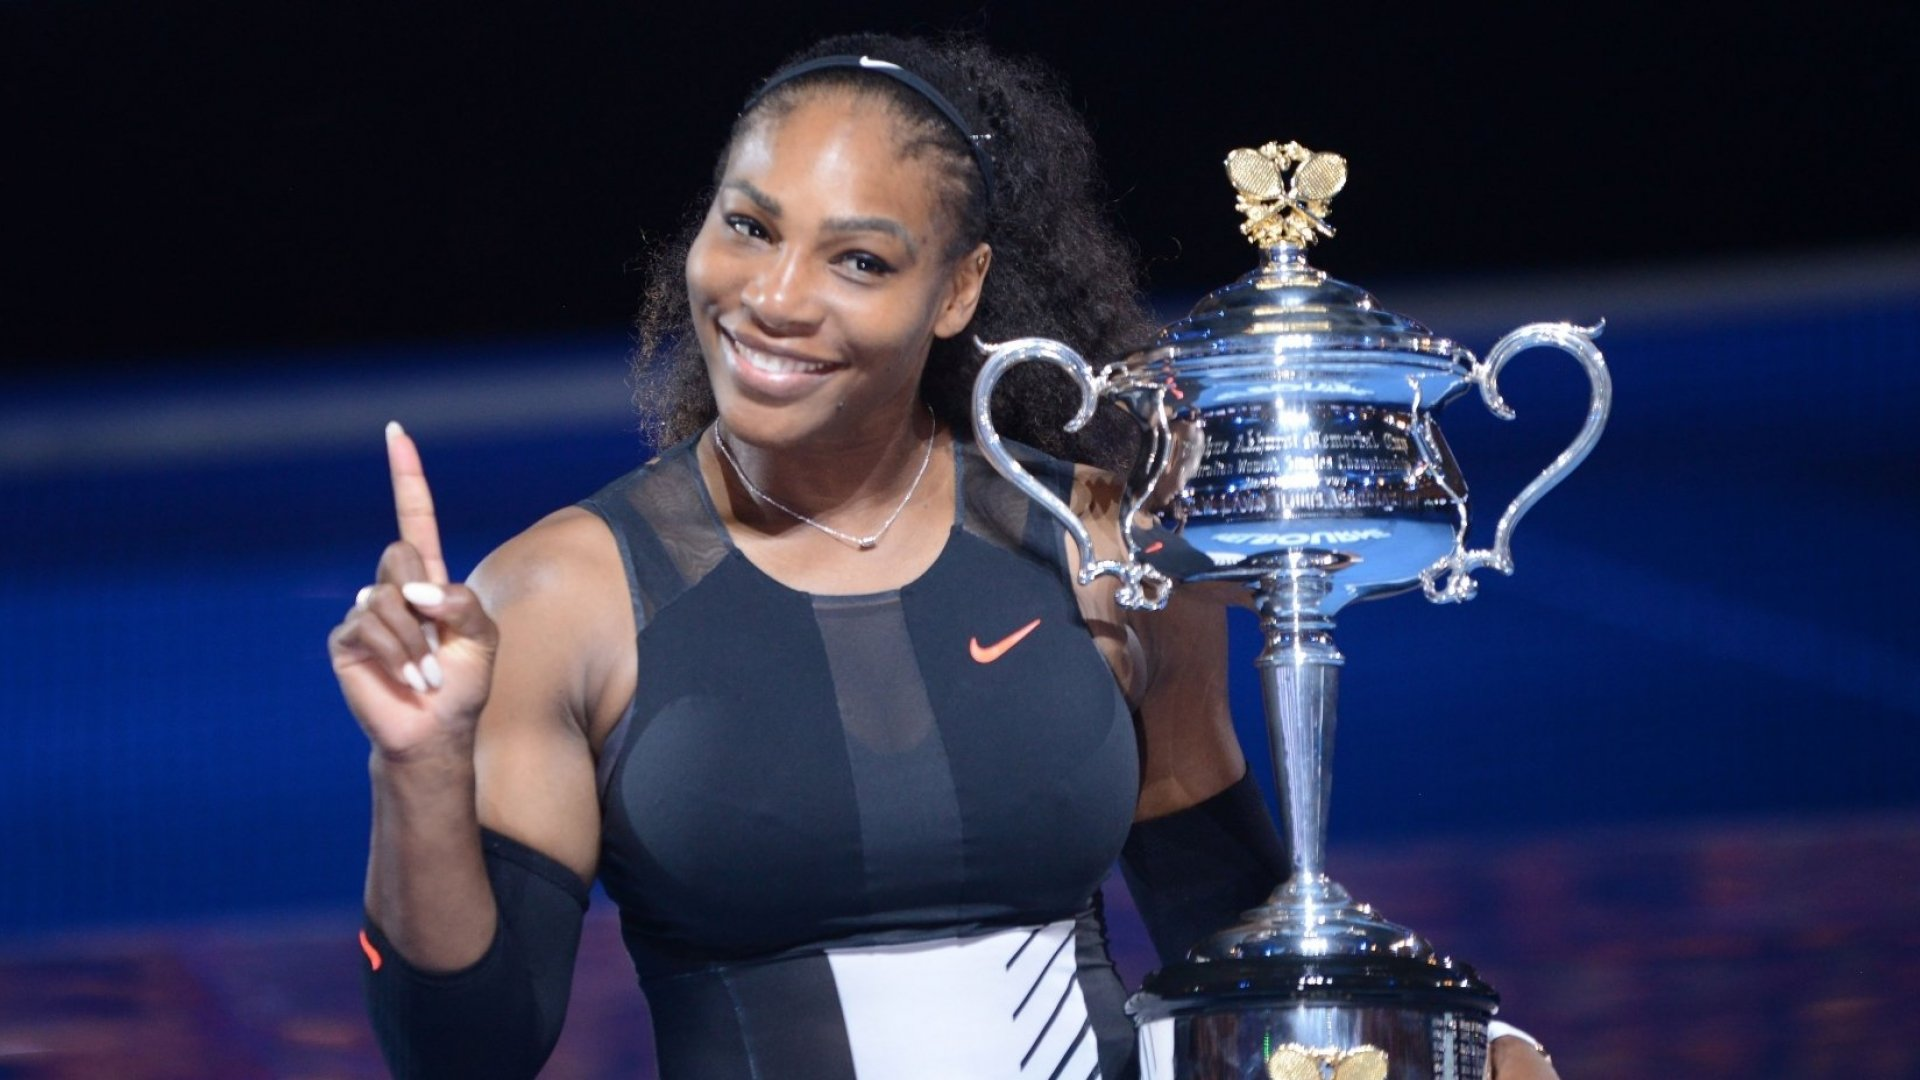 Serena Williams Says These 10 Words Are the Most Important Thing She Wants to Teach Her Daughter